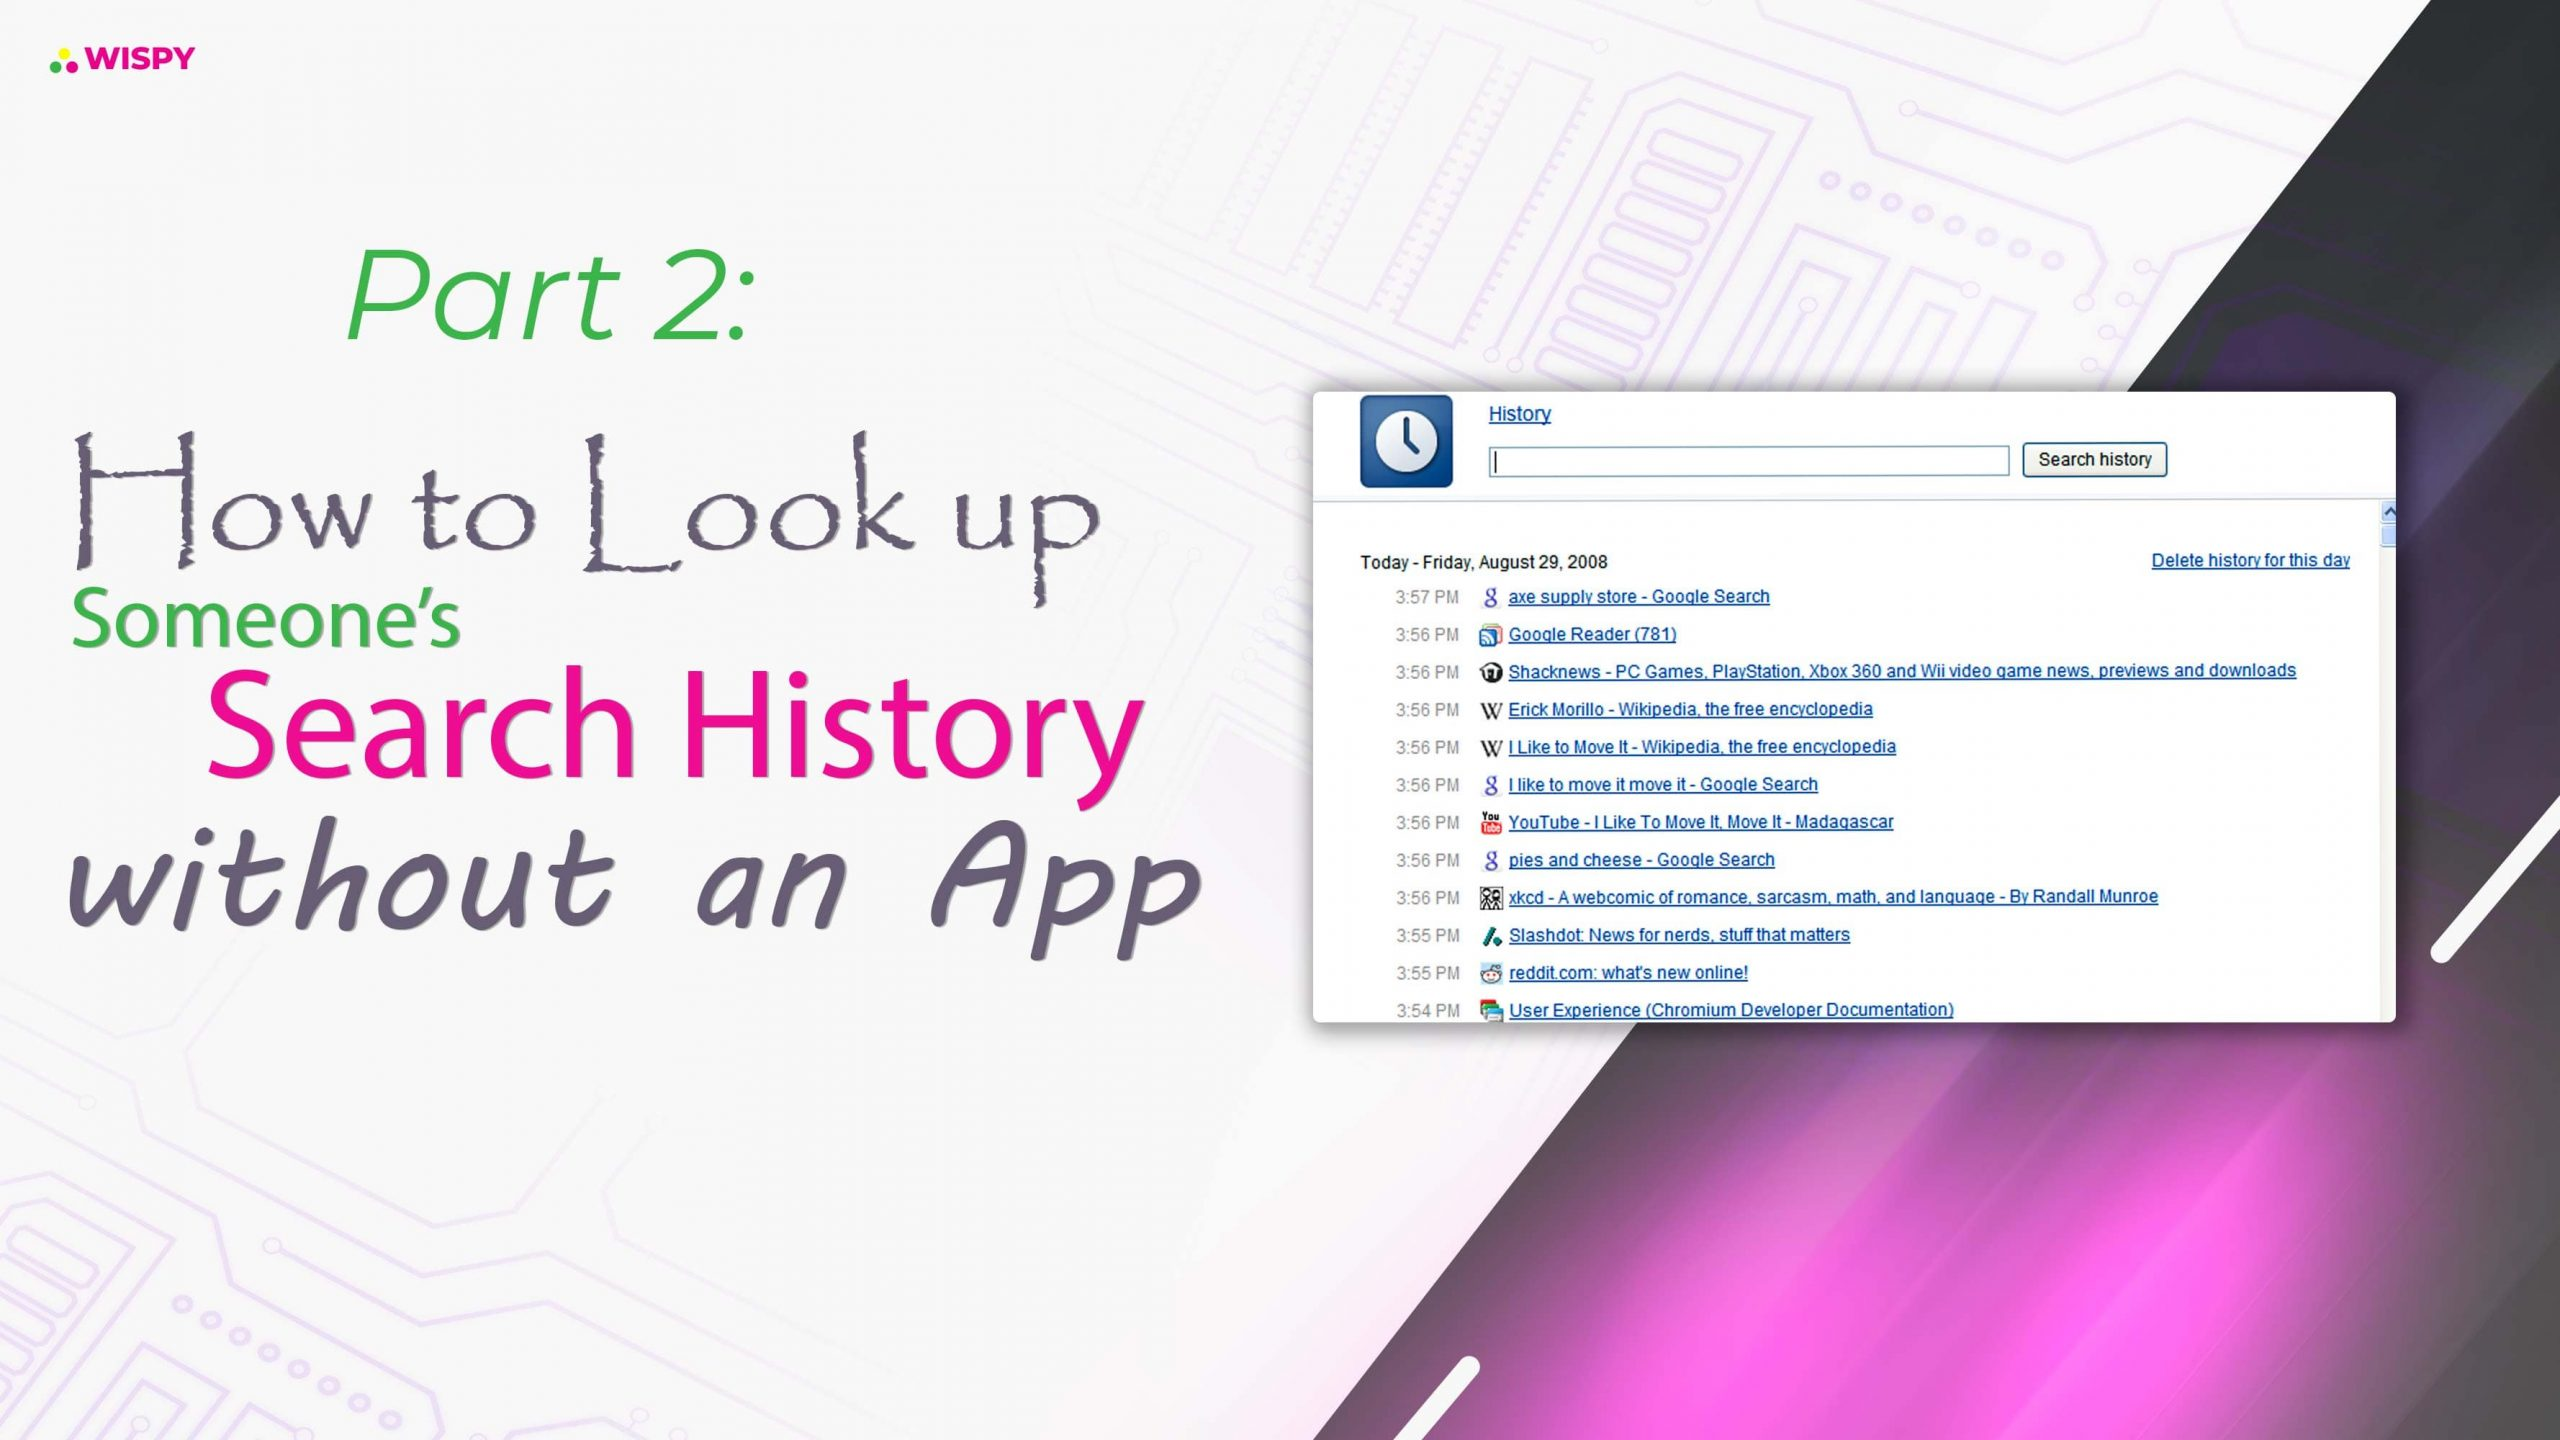 Part 2: How to Look Up Someone's Search History without an App?